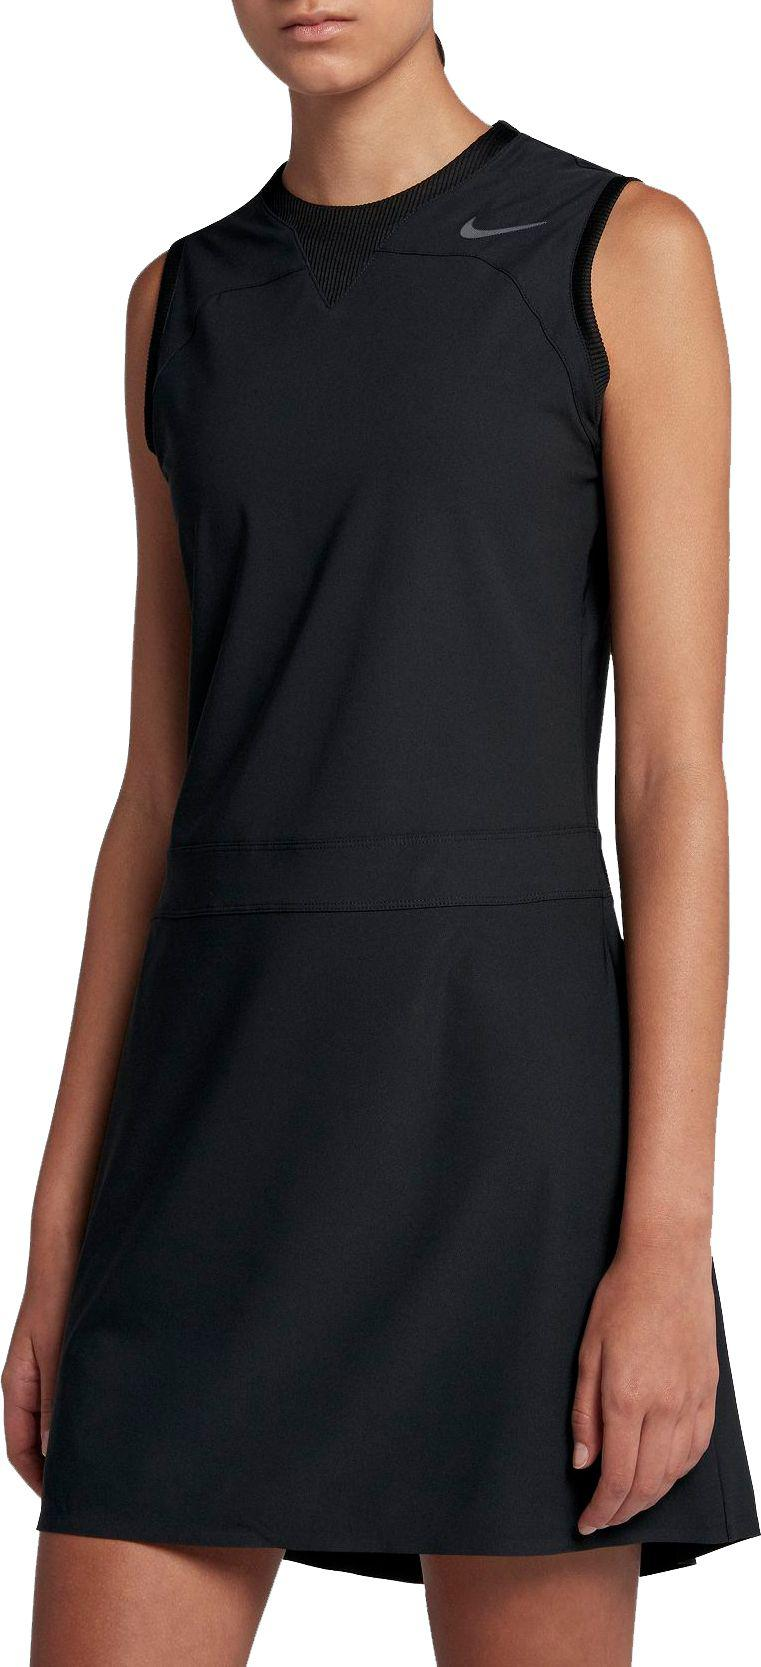 c09edf70839e08 Lyst - Nike Sleeveless Flex Golf Dress in Black